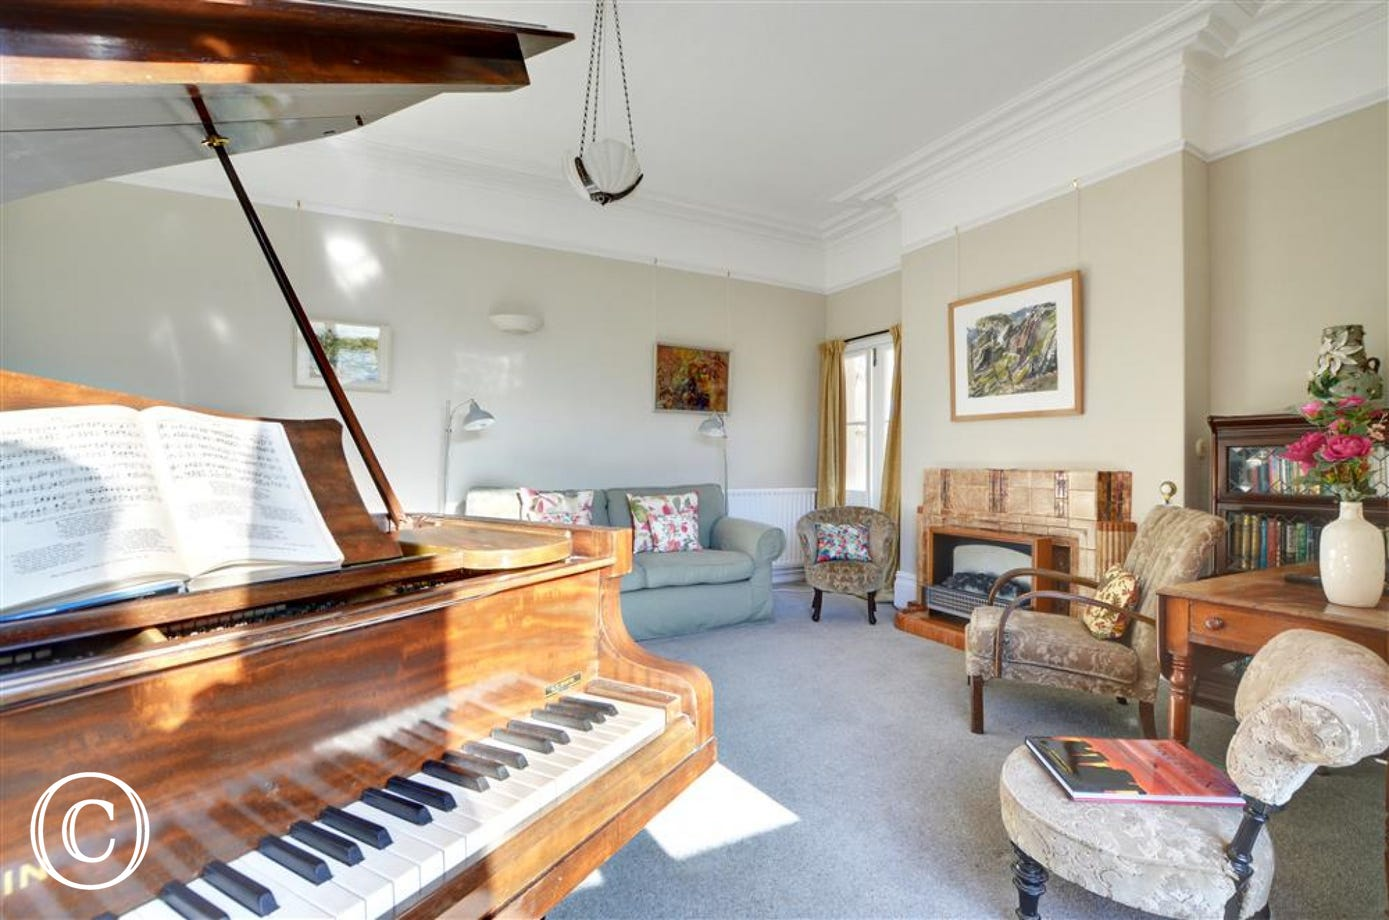 The family have a musical tradition, and guests are invited to play the grand piano in the living room